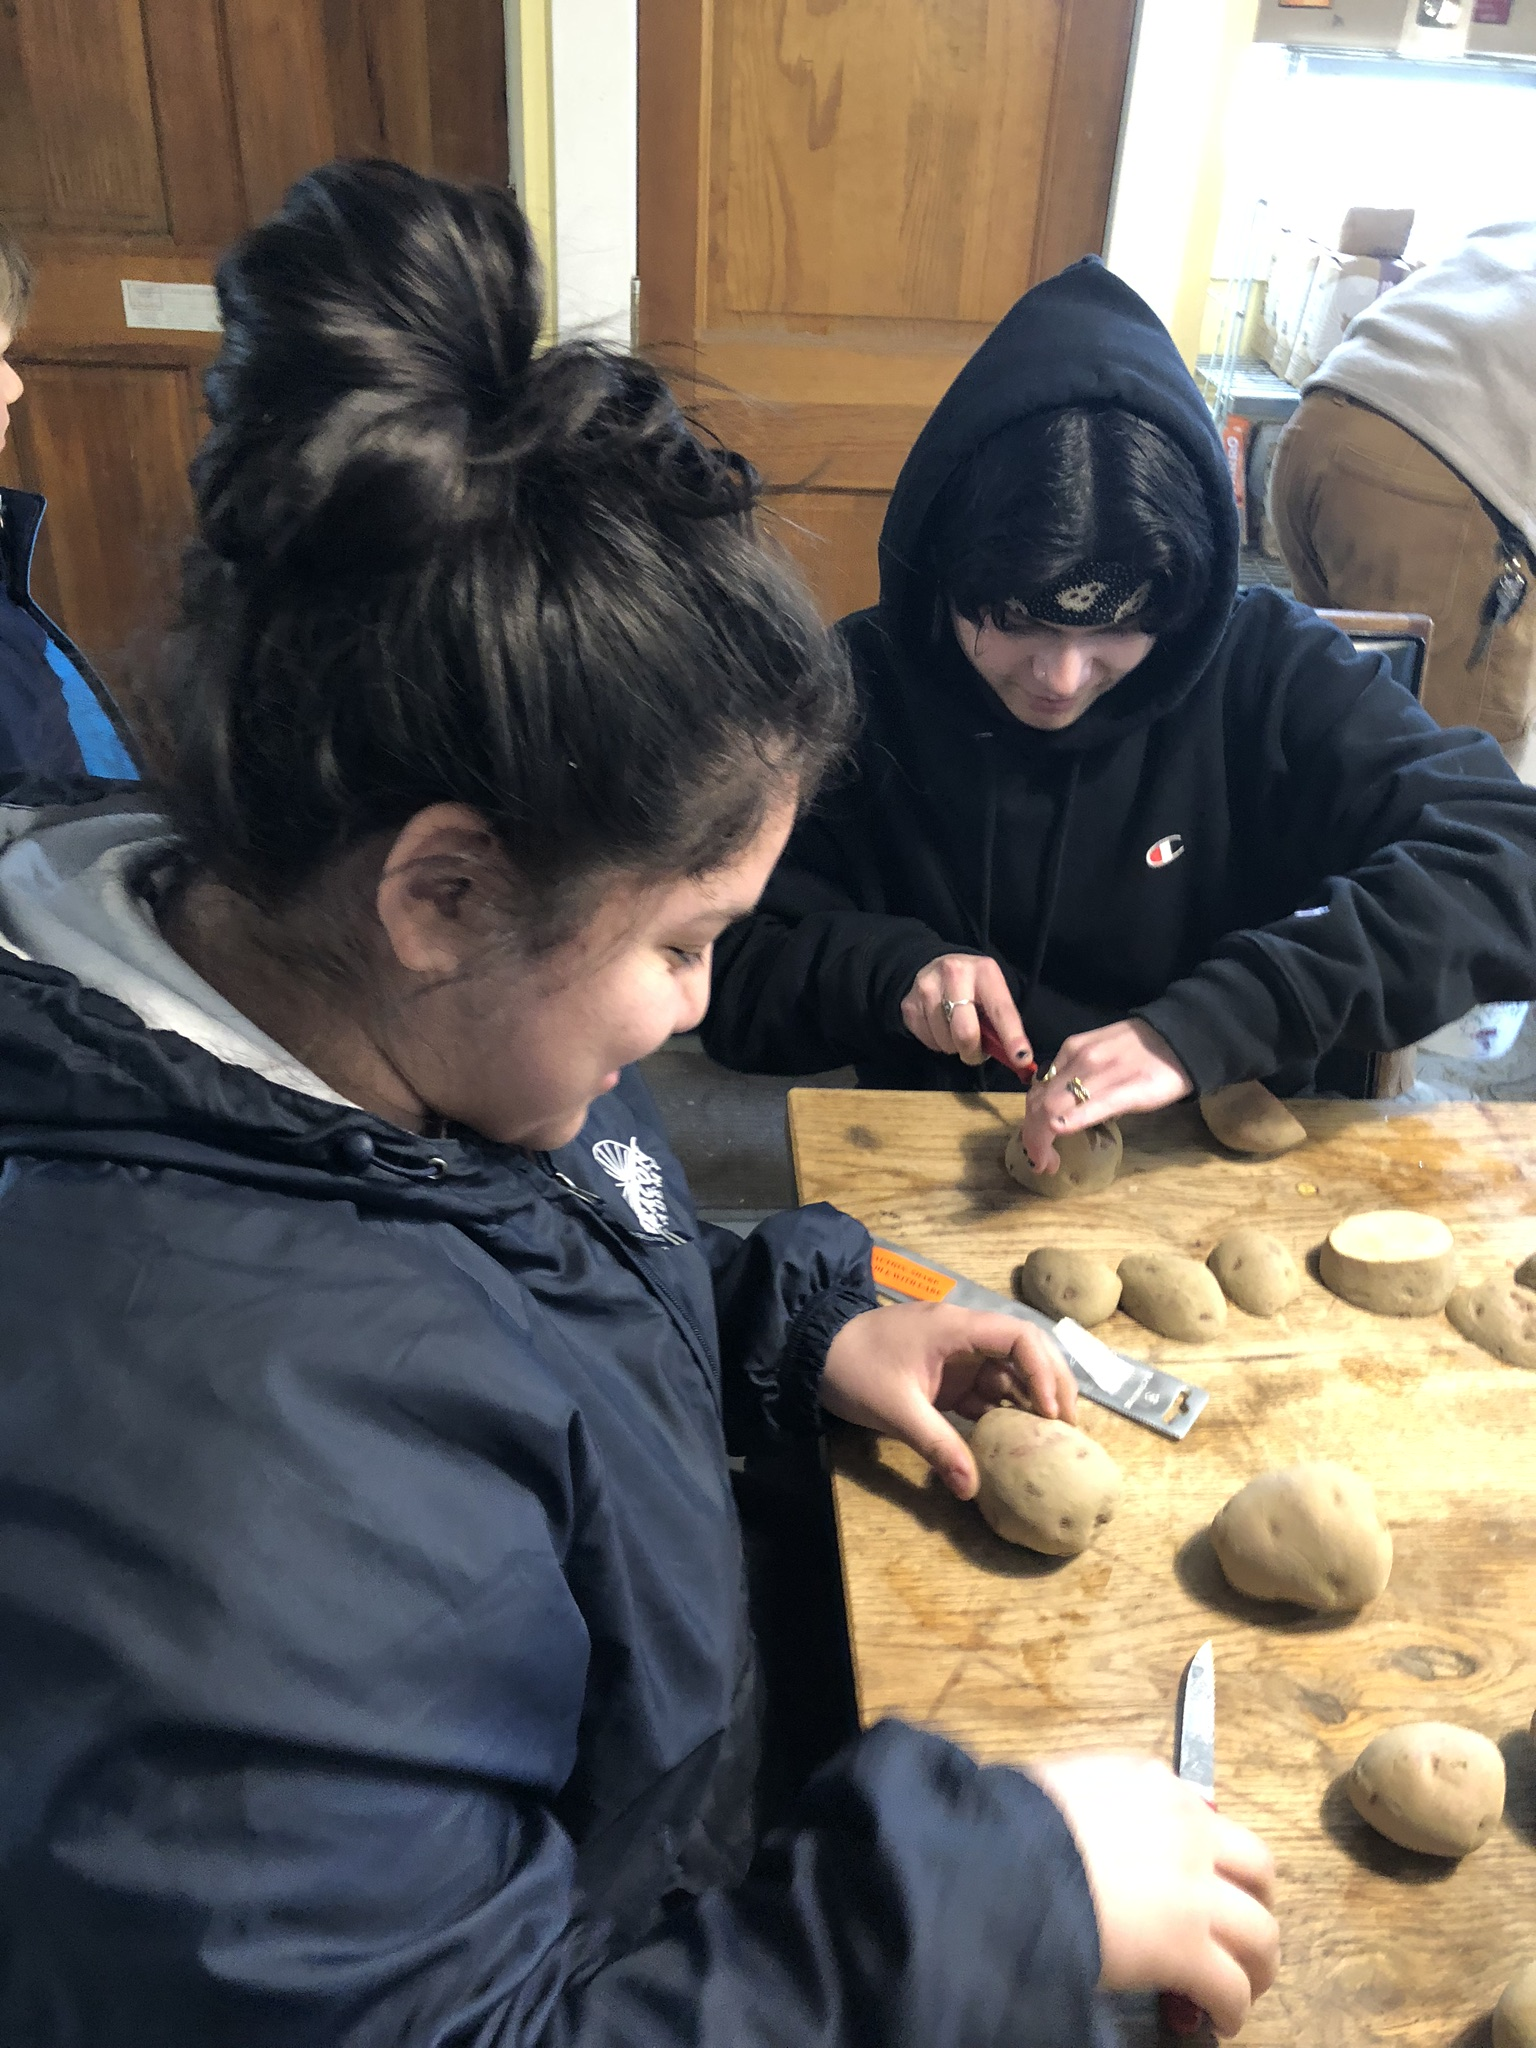 Waldorf High School students cutting up seed potatoes